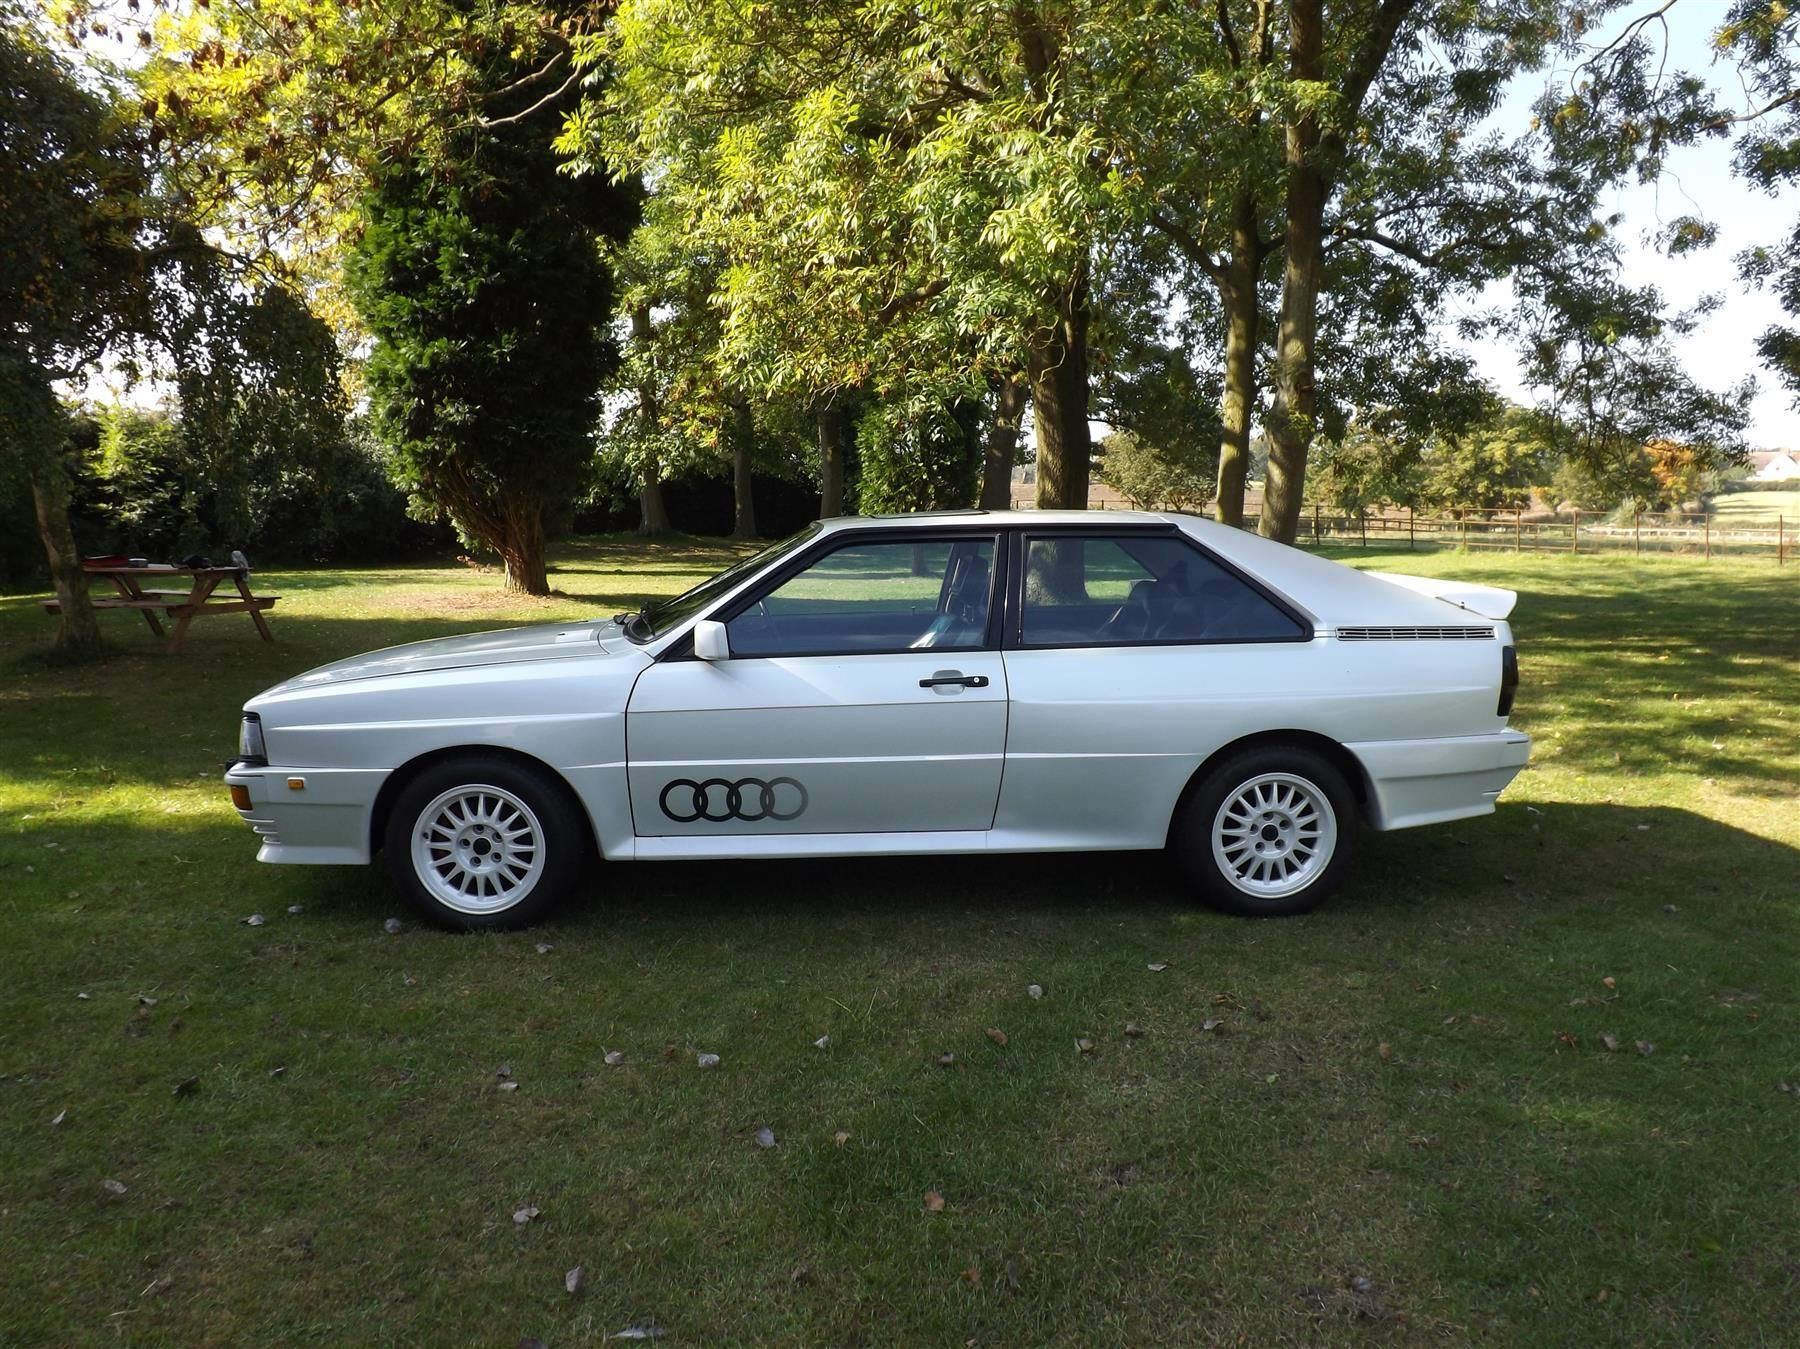 Used Audi Quattro Coupe For Sale In Warwickshire From Classic - Audi car auctions